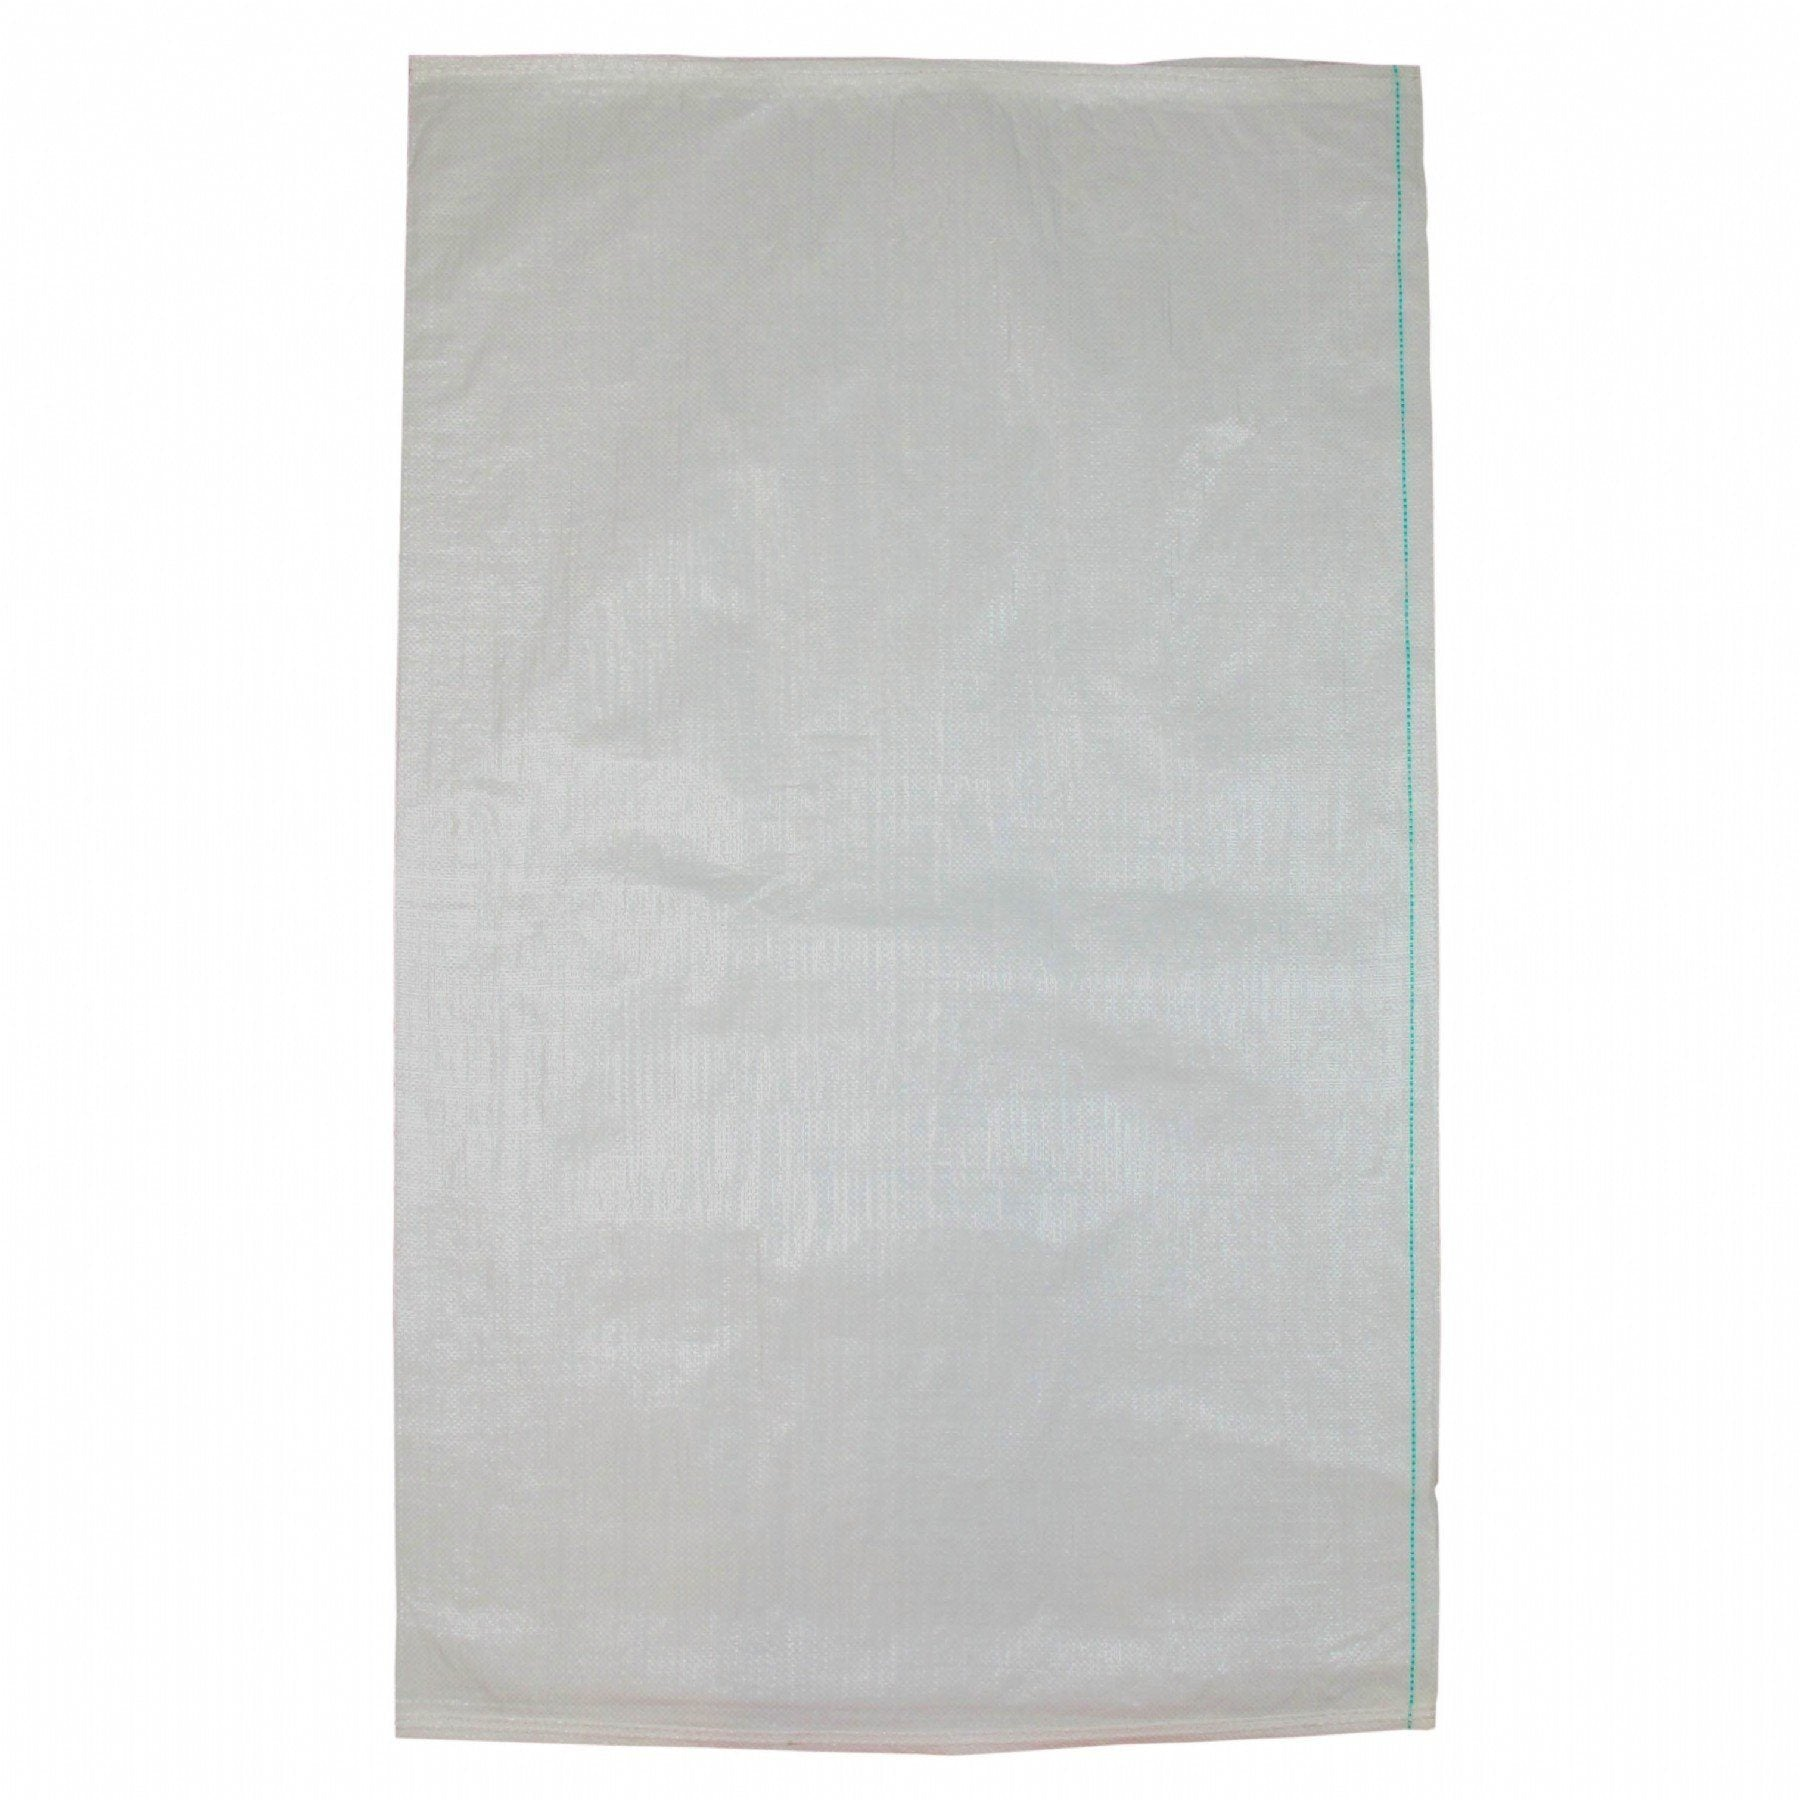 760 X 1,200mm White UV Stabilised Unlaminated Woven Polypropylene (Polywoven) Bag Sack - Pack of 10 ProEarth-Normal-Prospectors